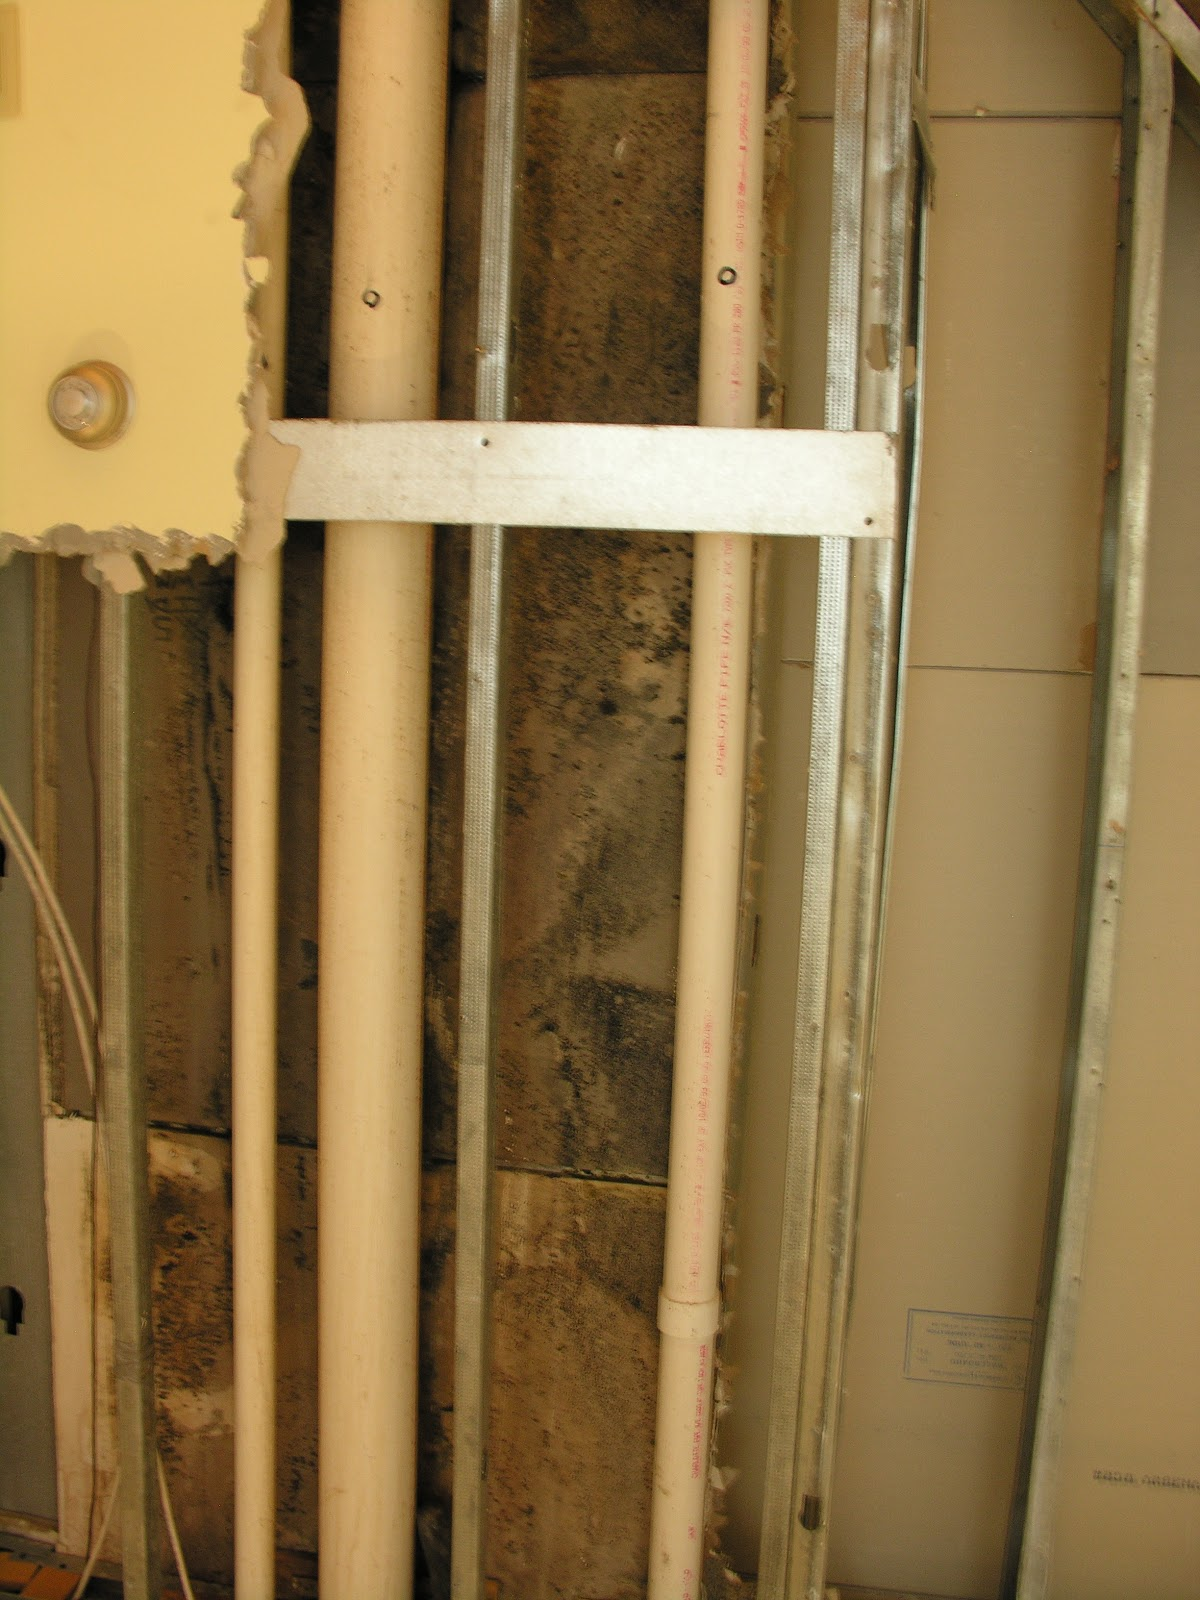 how to detect mold behind walls